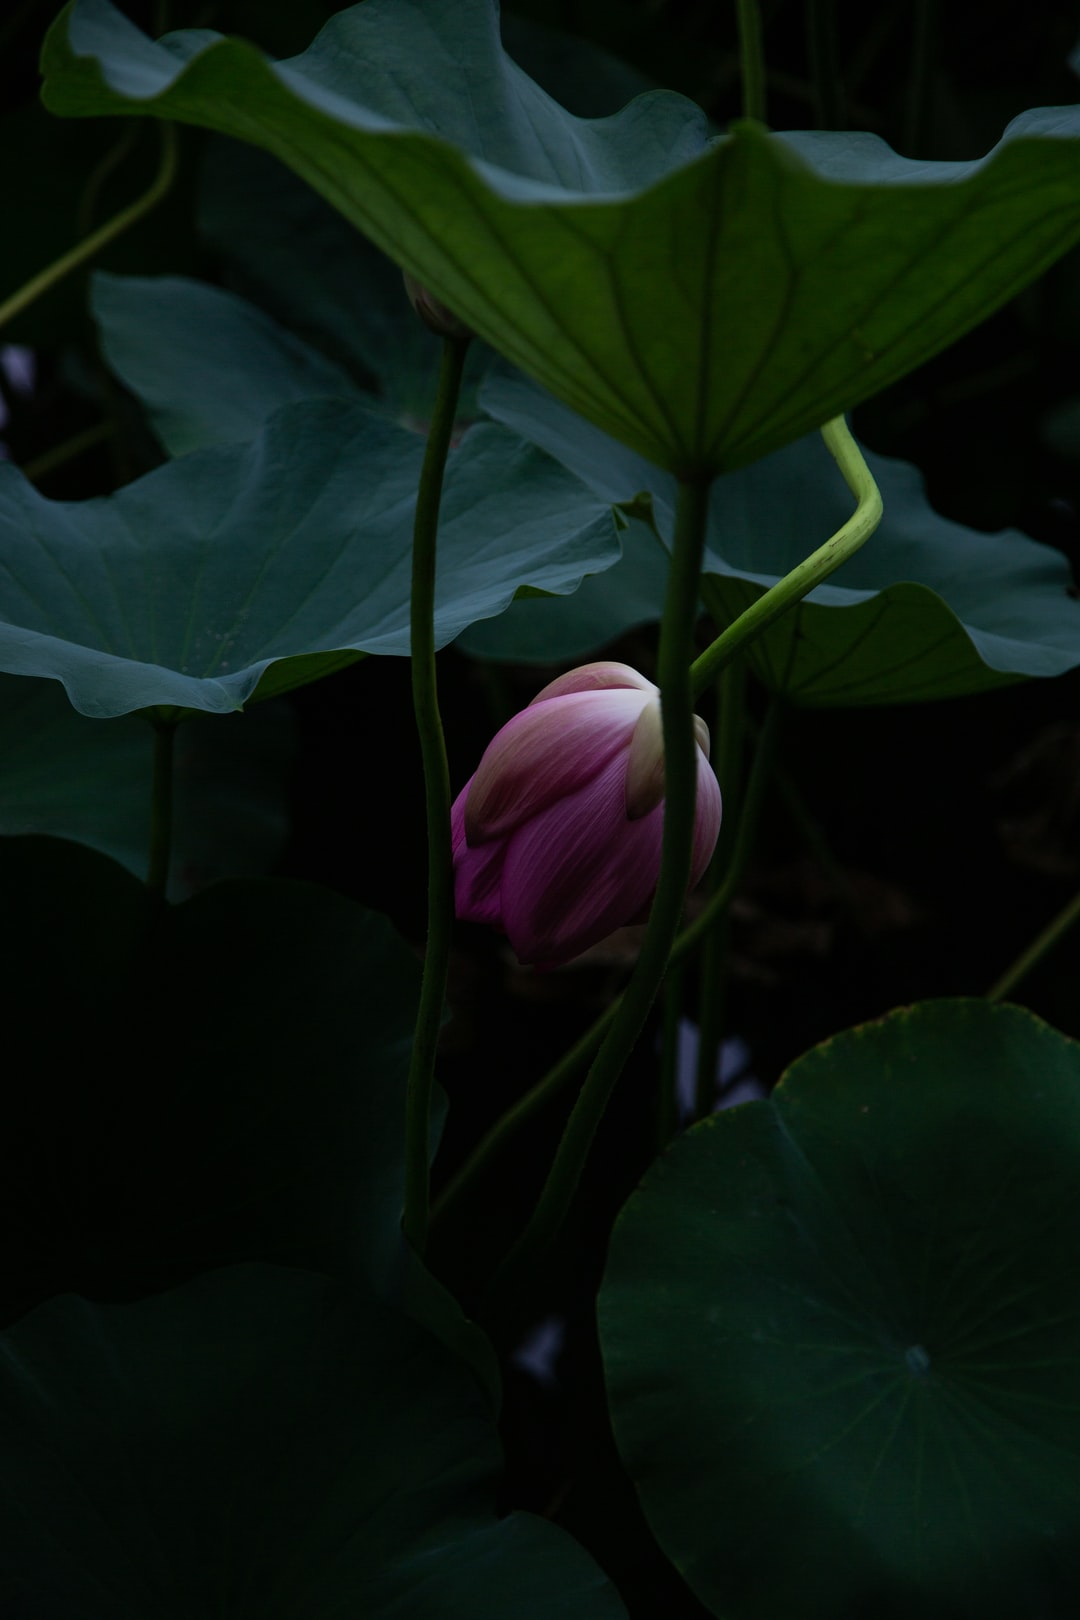 A withering lotus flower